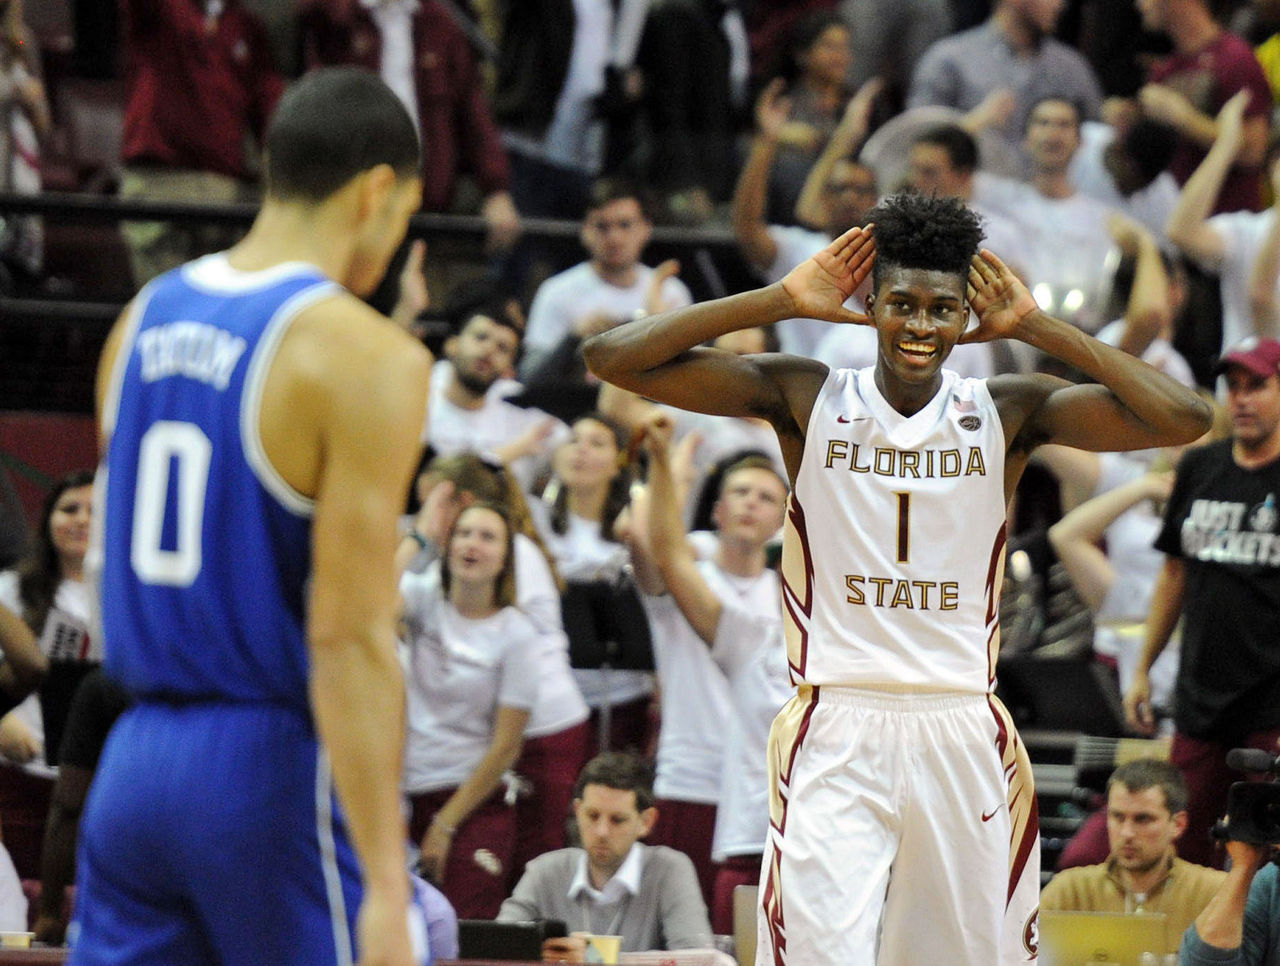 Cropped 2017 01 11t034129z 1760485534 nocid rtrmadp 3 ncaa basketball duke at florida state